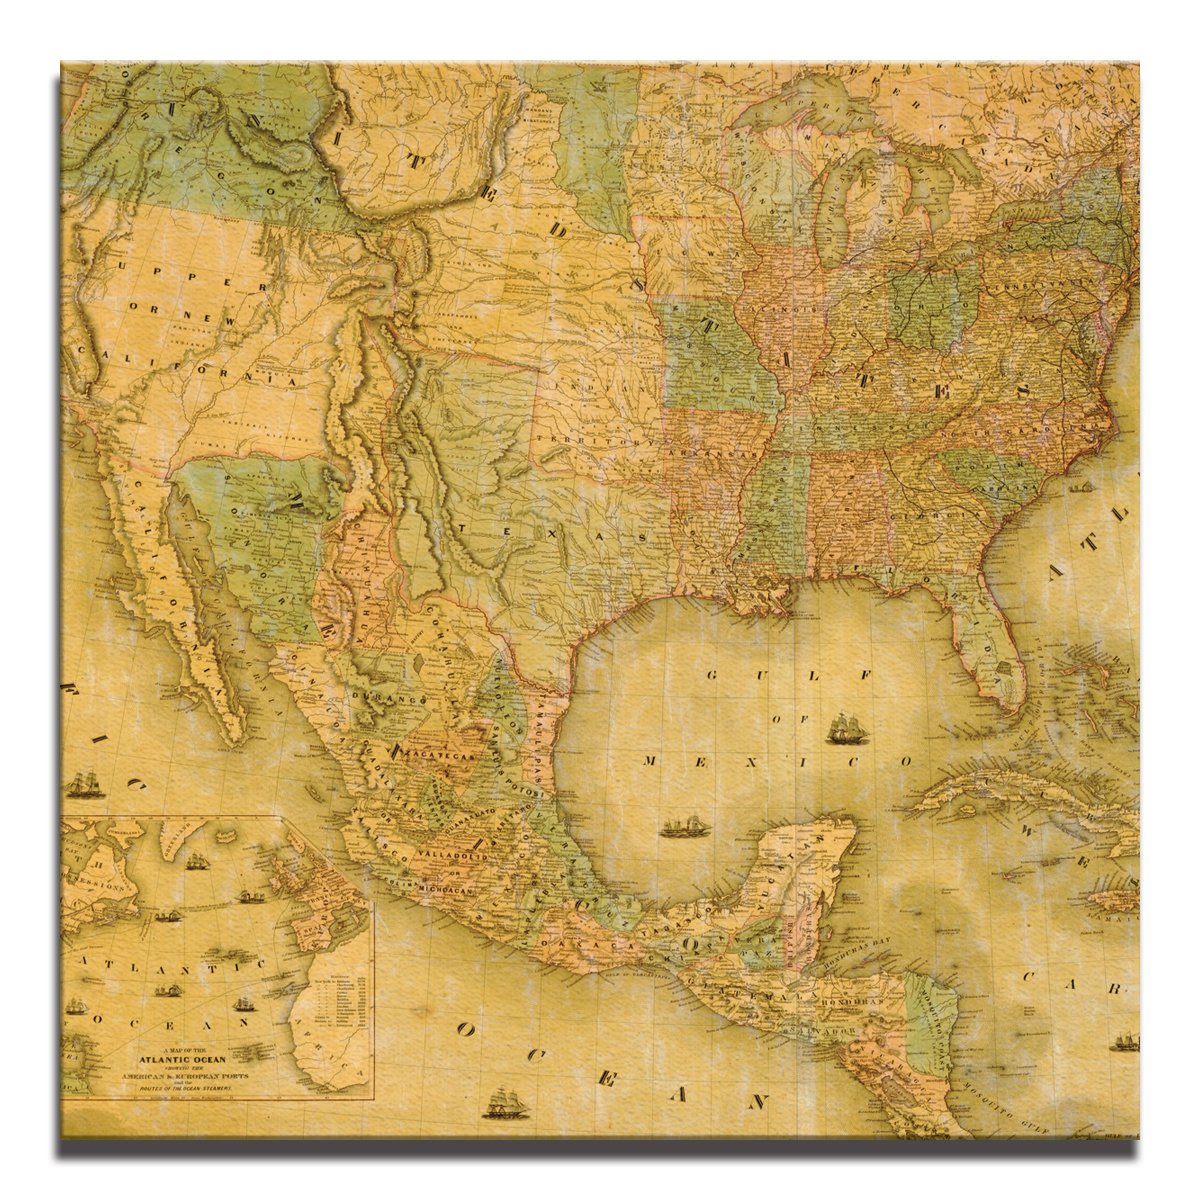 JP London Ready to Hang Made Gallery Wrap Heavyweight Canvas Wall Art Antique Map North America Aged 14in SQSCNV2154